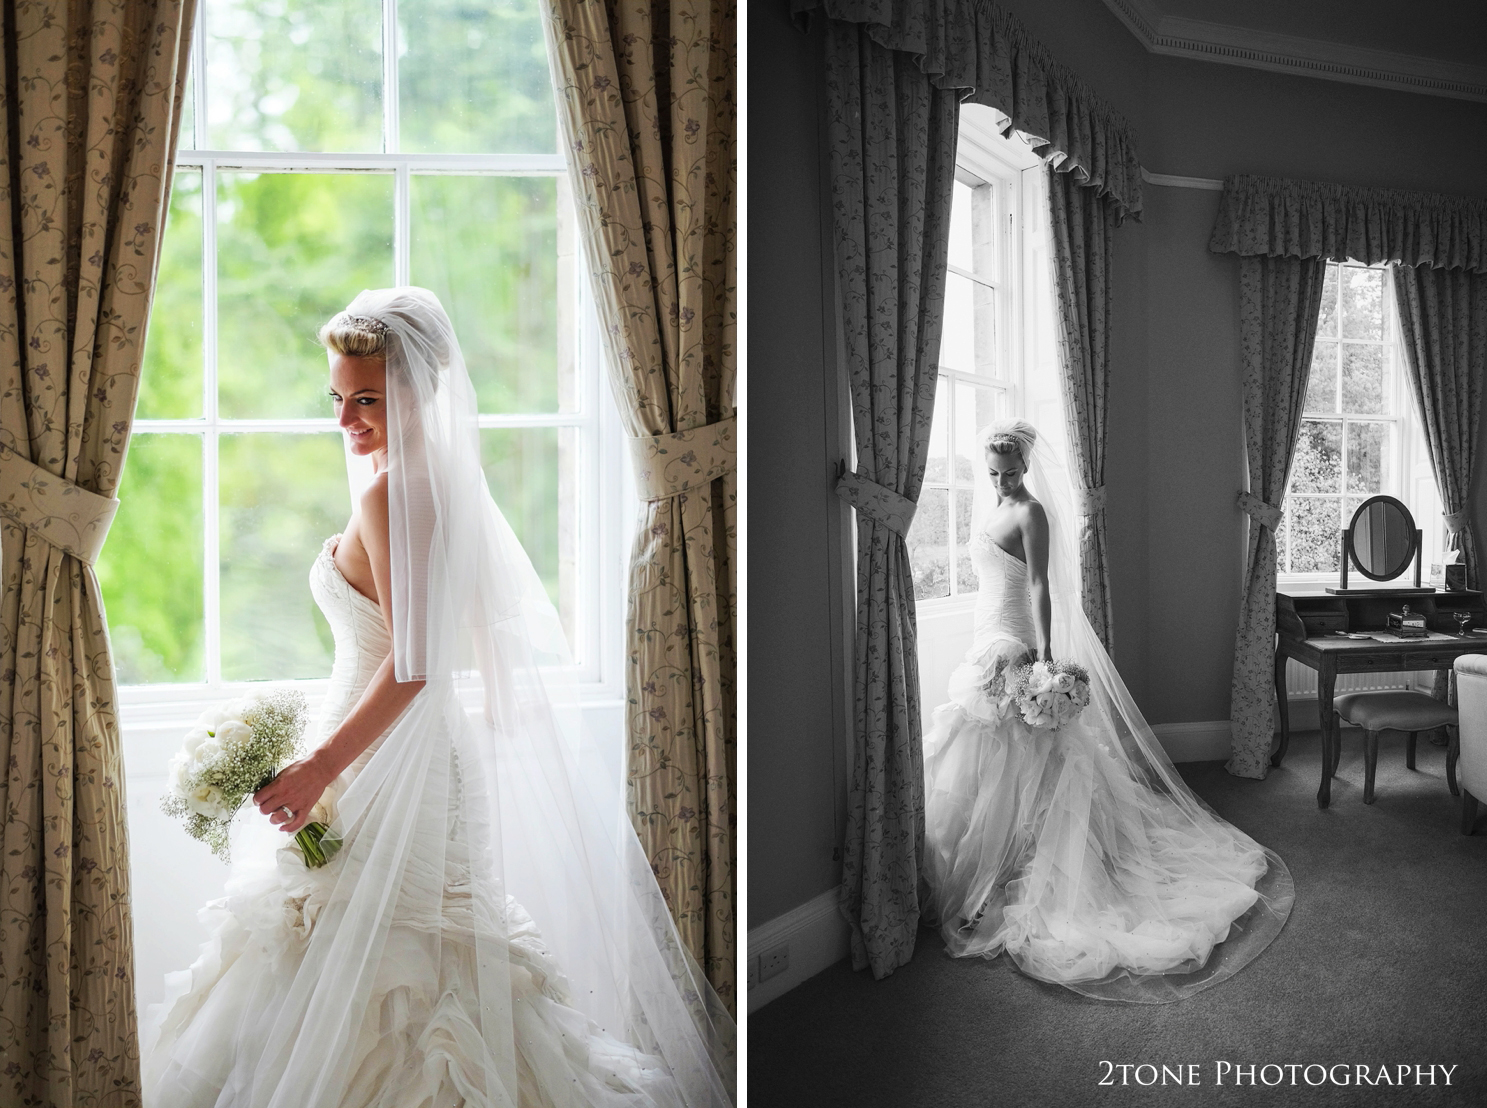 Bride in Ian Stuart wedding gown at Middleton Lodge.  Wedding photography by www.2tonephotography.co.uk